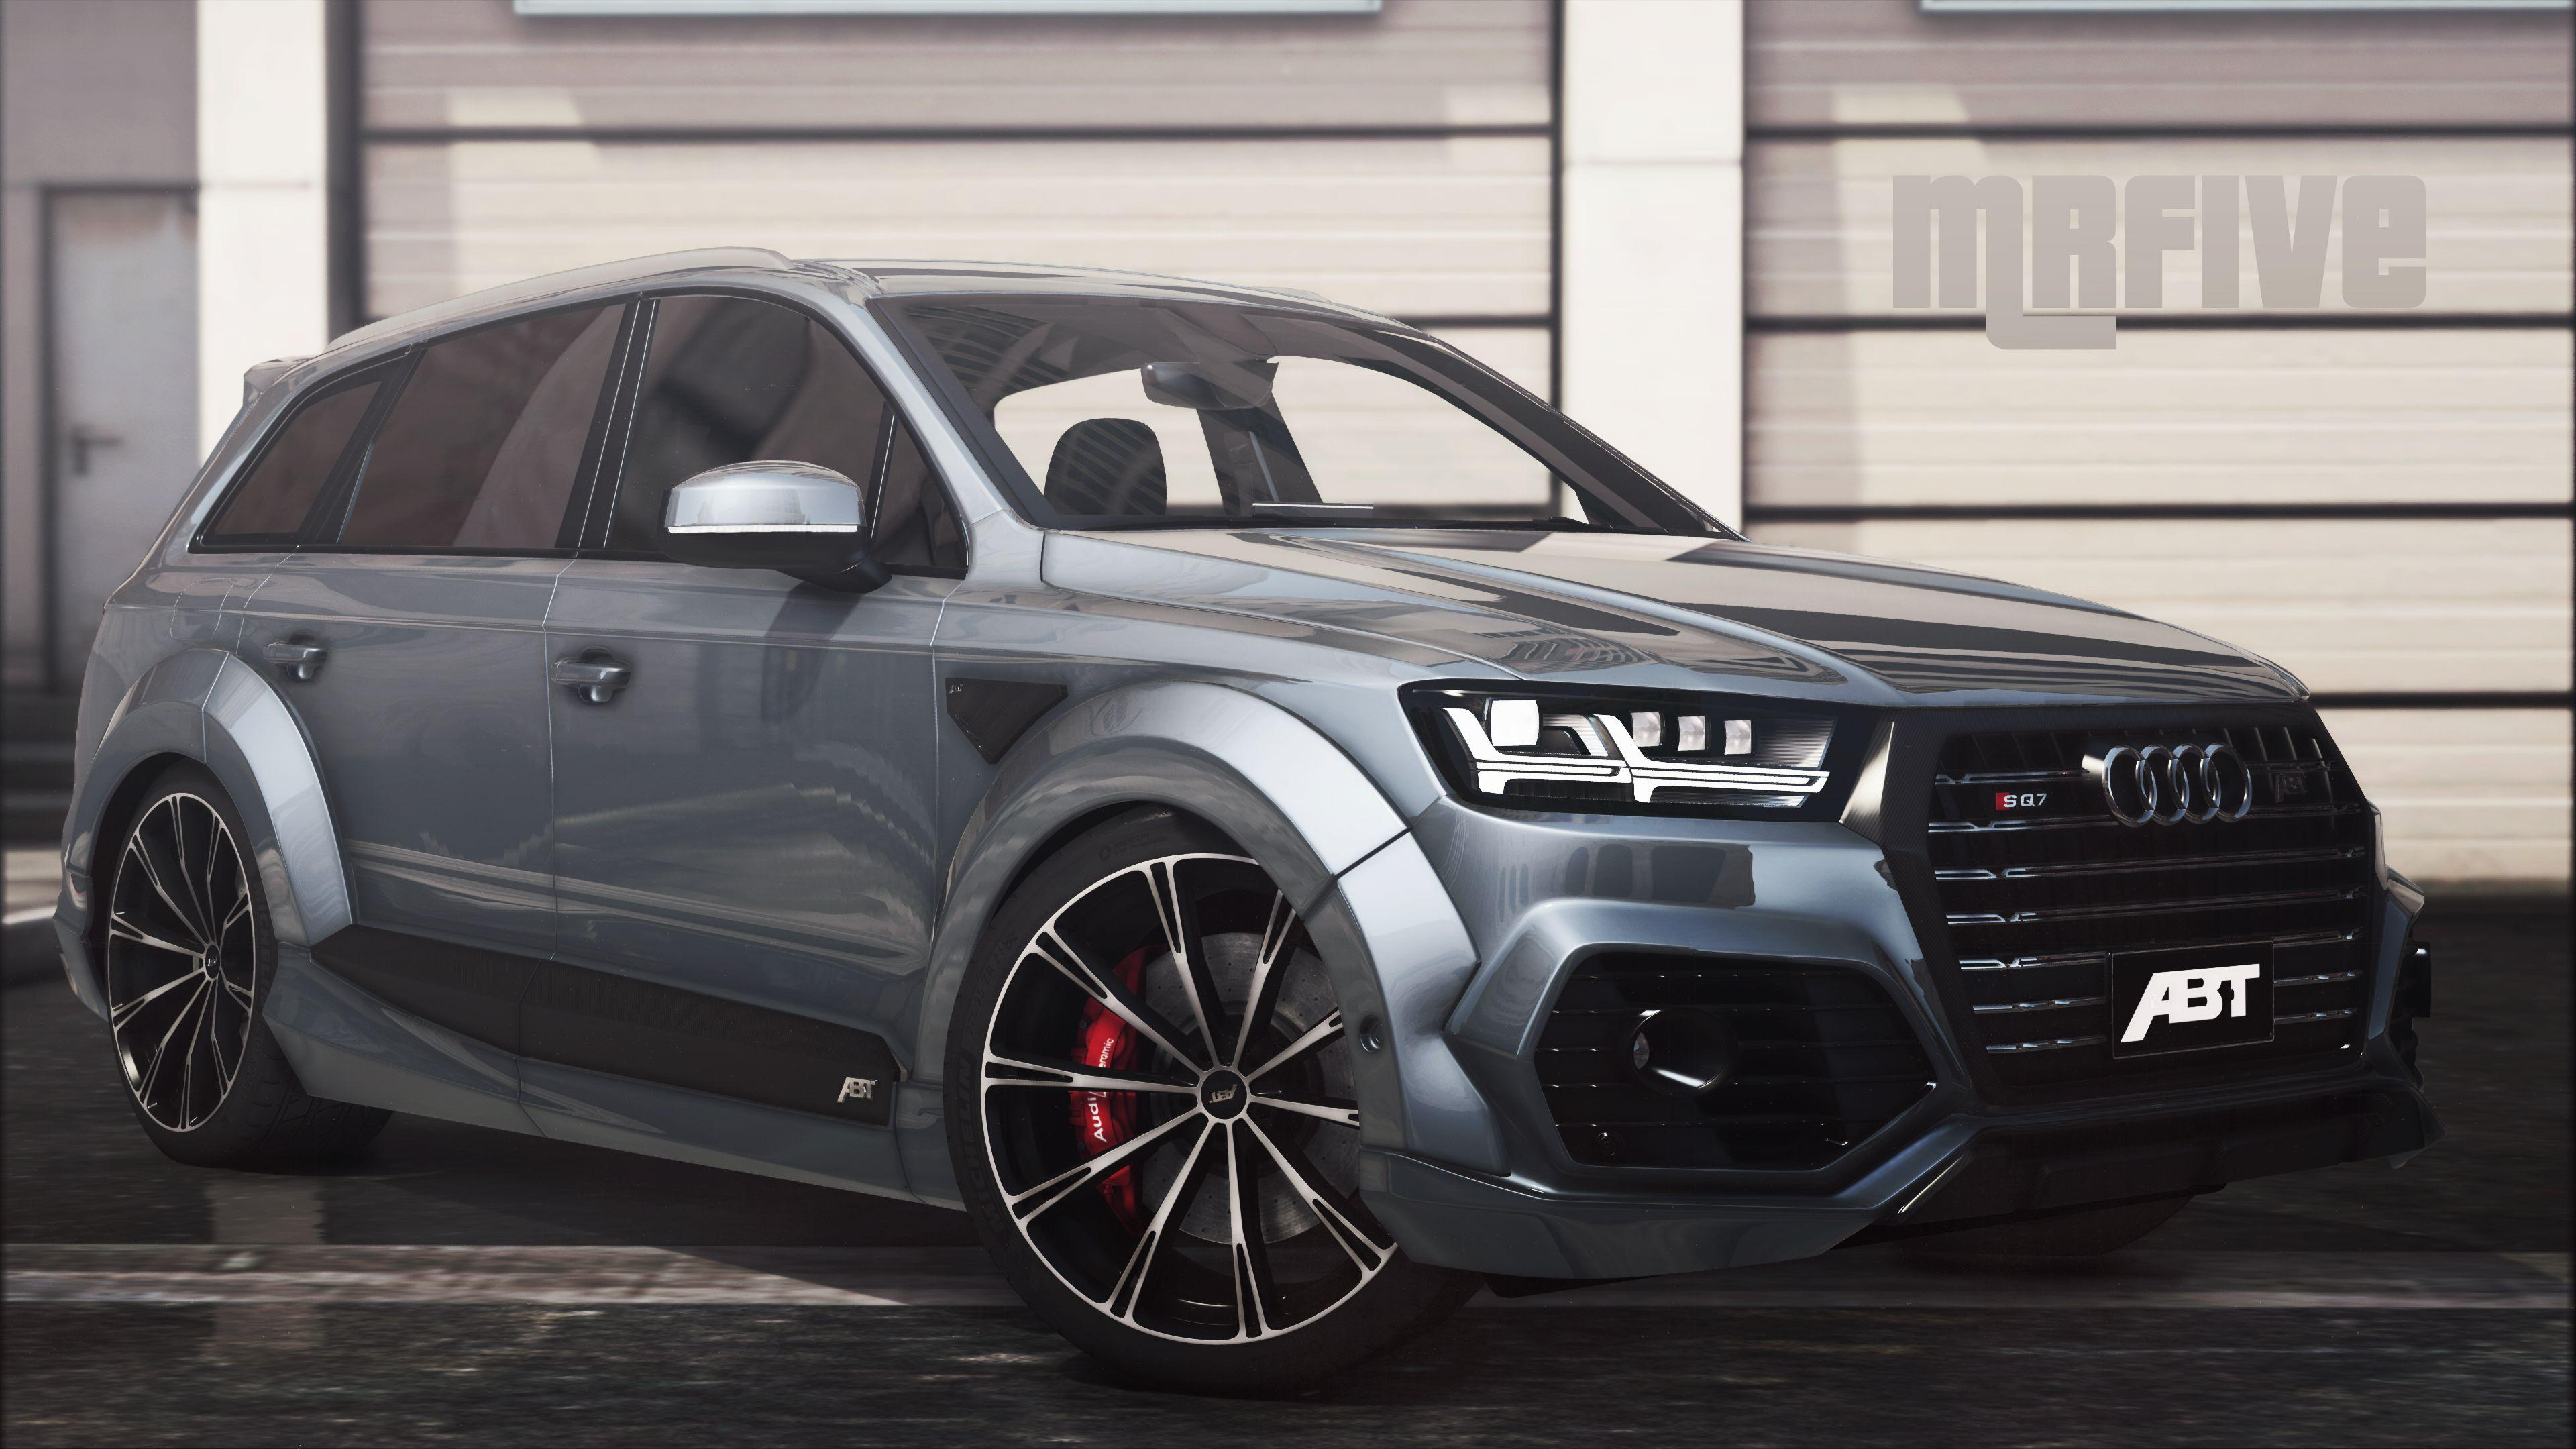 Audi Sq7 2016 Add On Abt Tuning Gta5 Mods Com